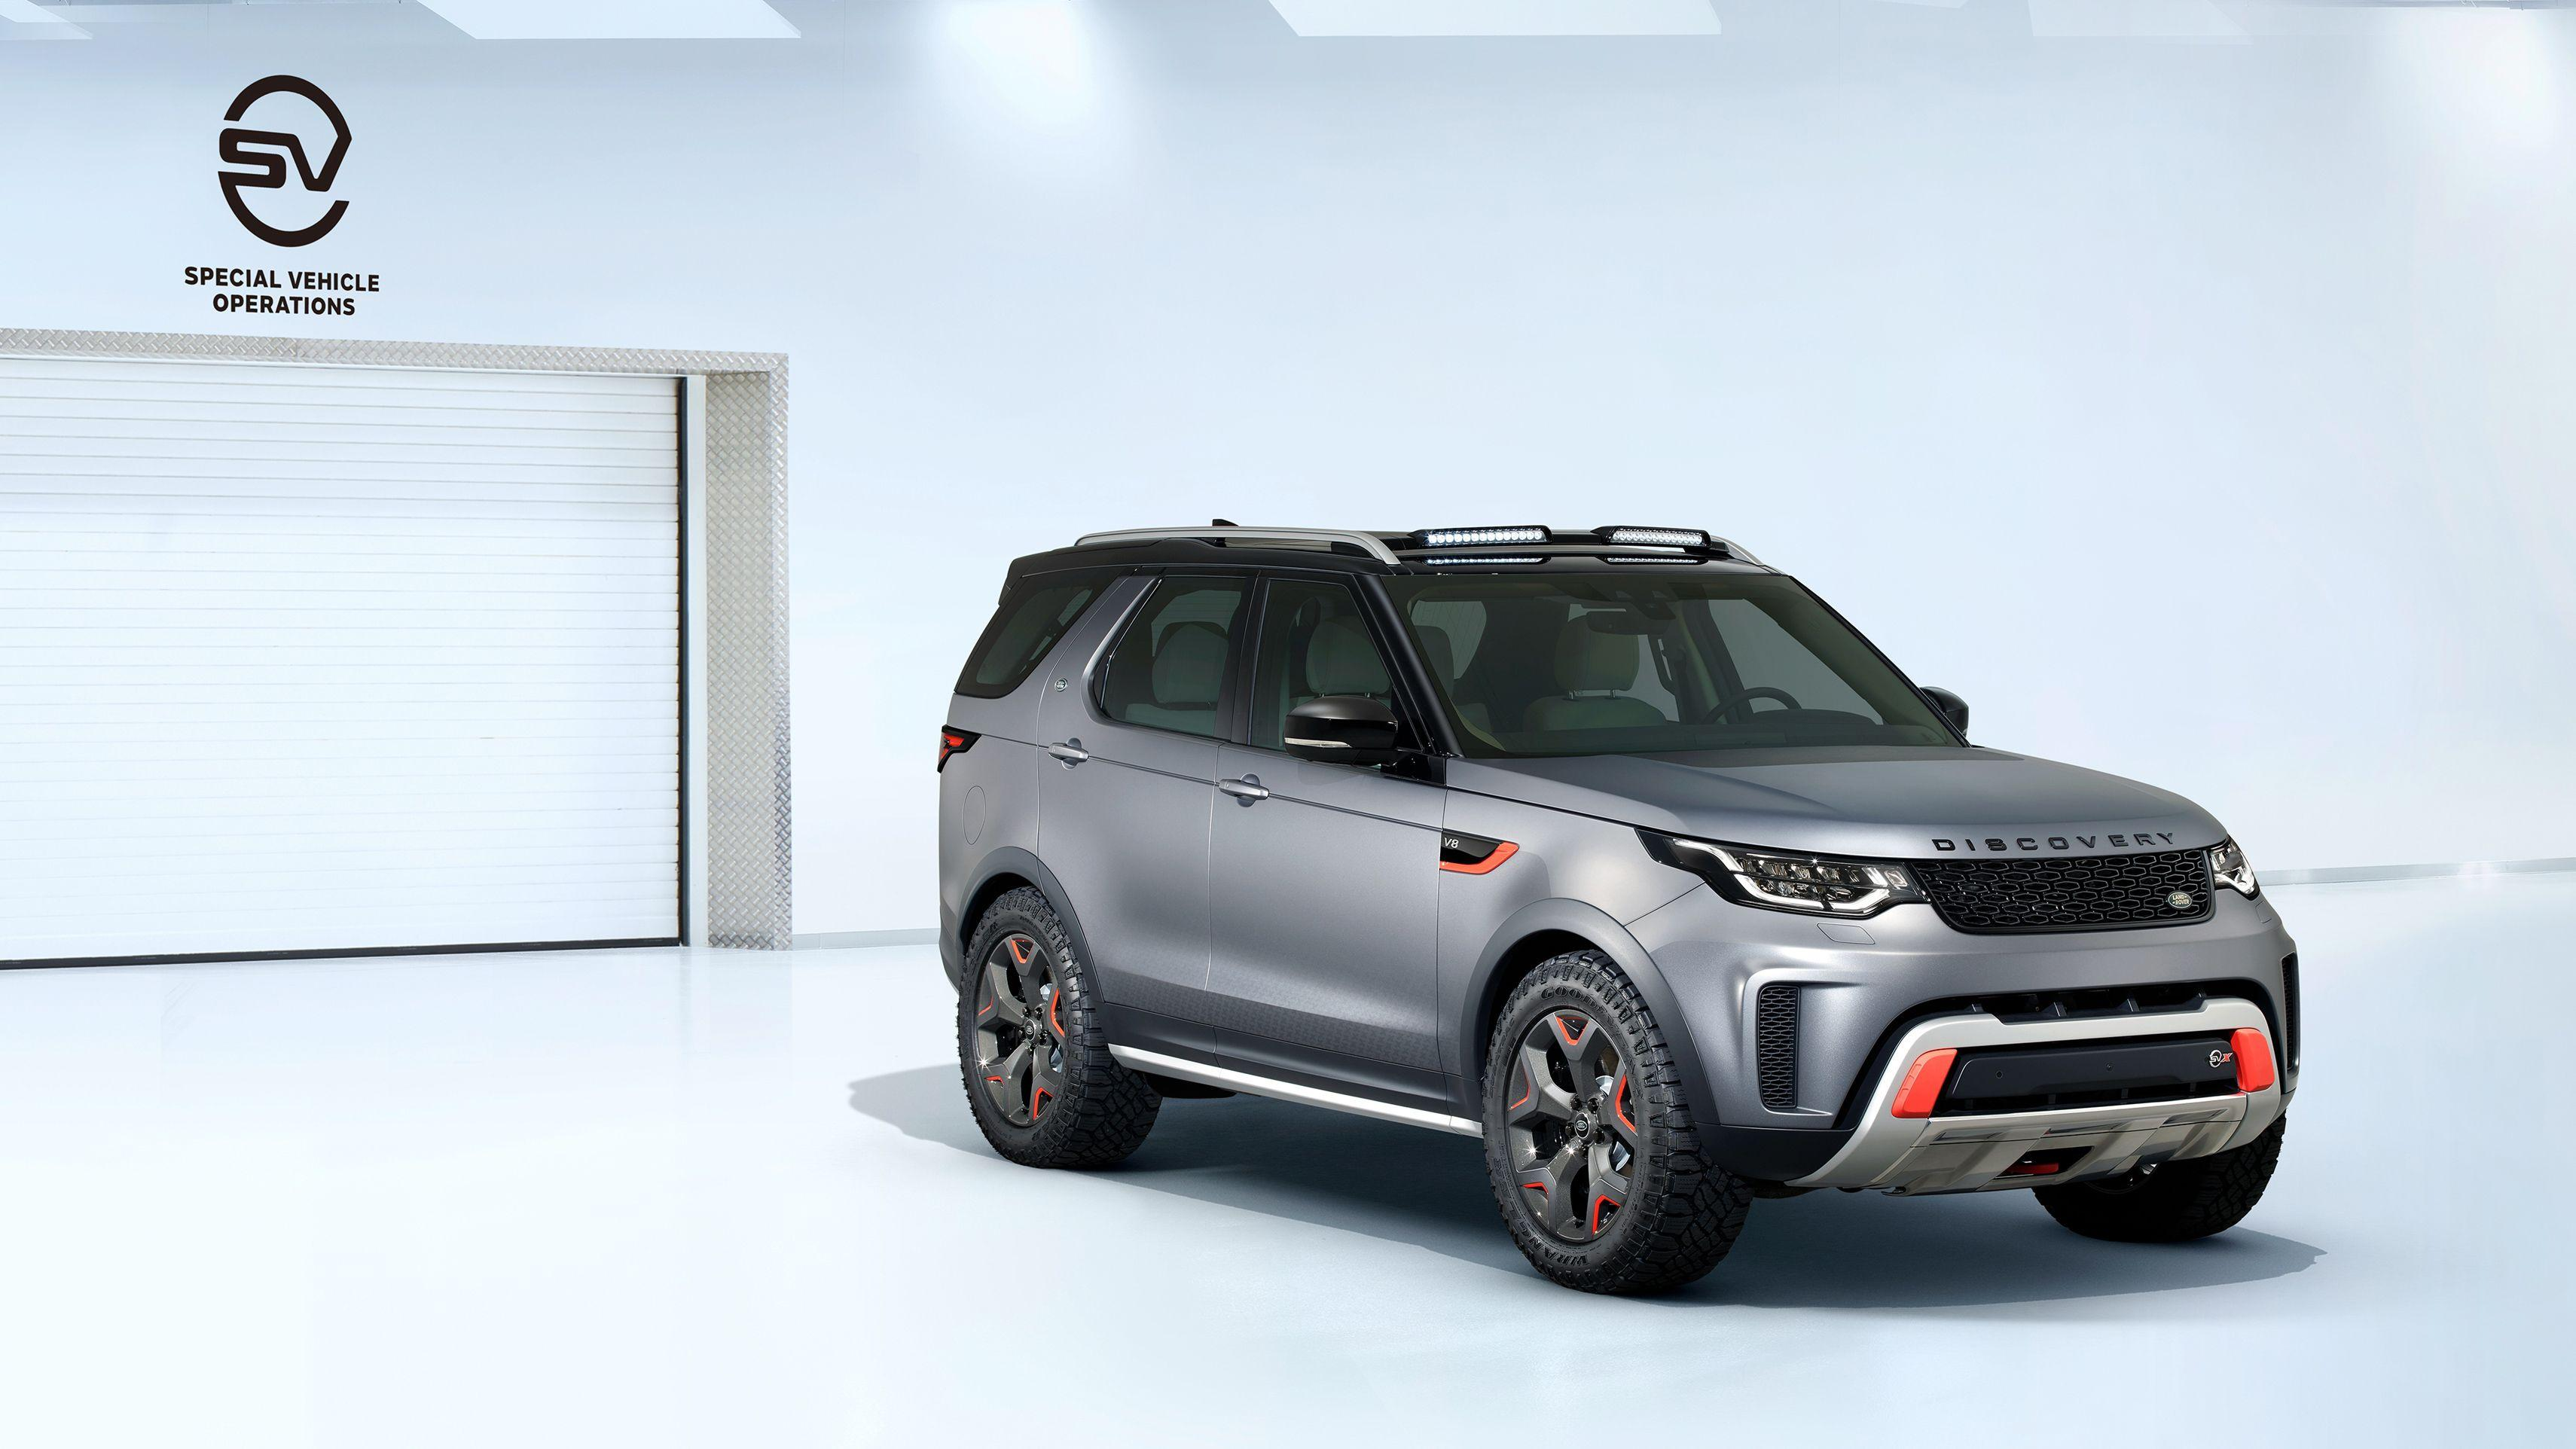 2019 Land Rover Discovery SVX Wallpapers